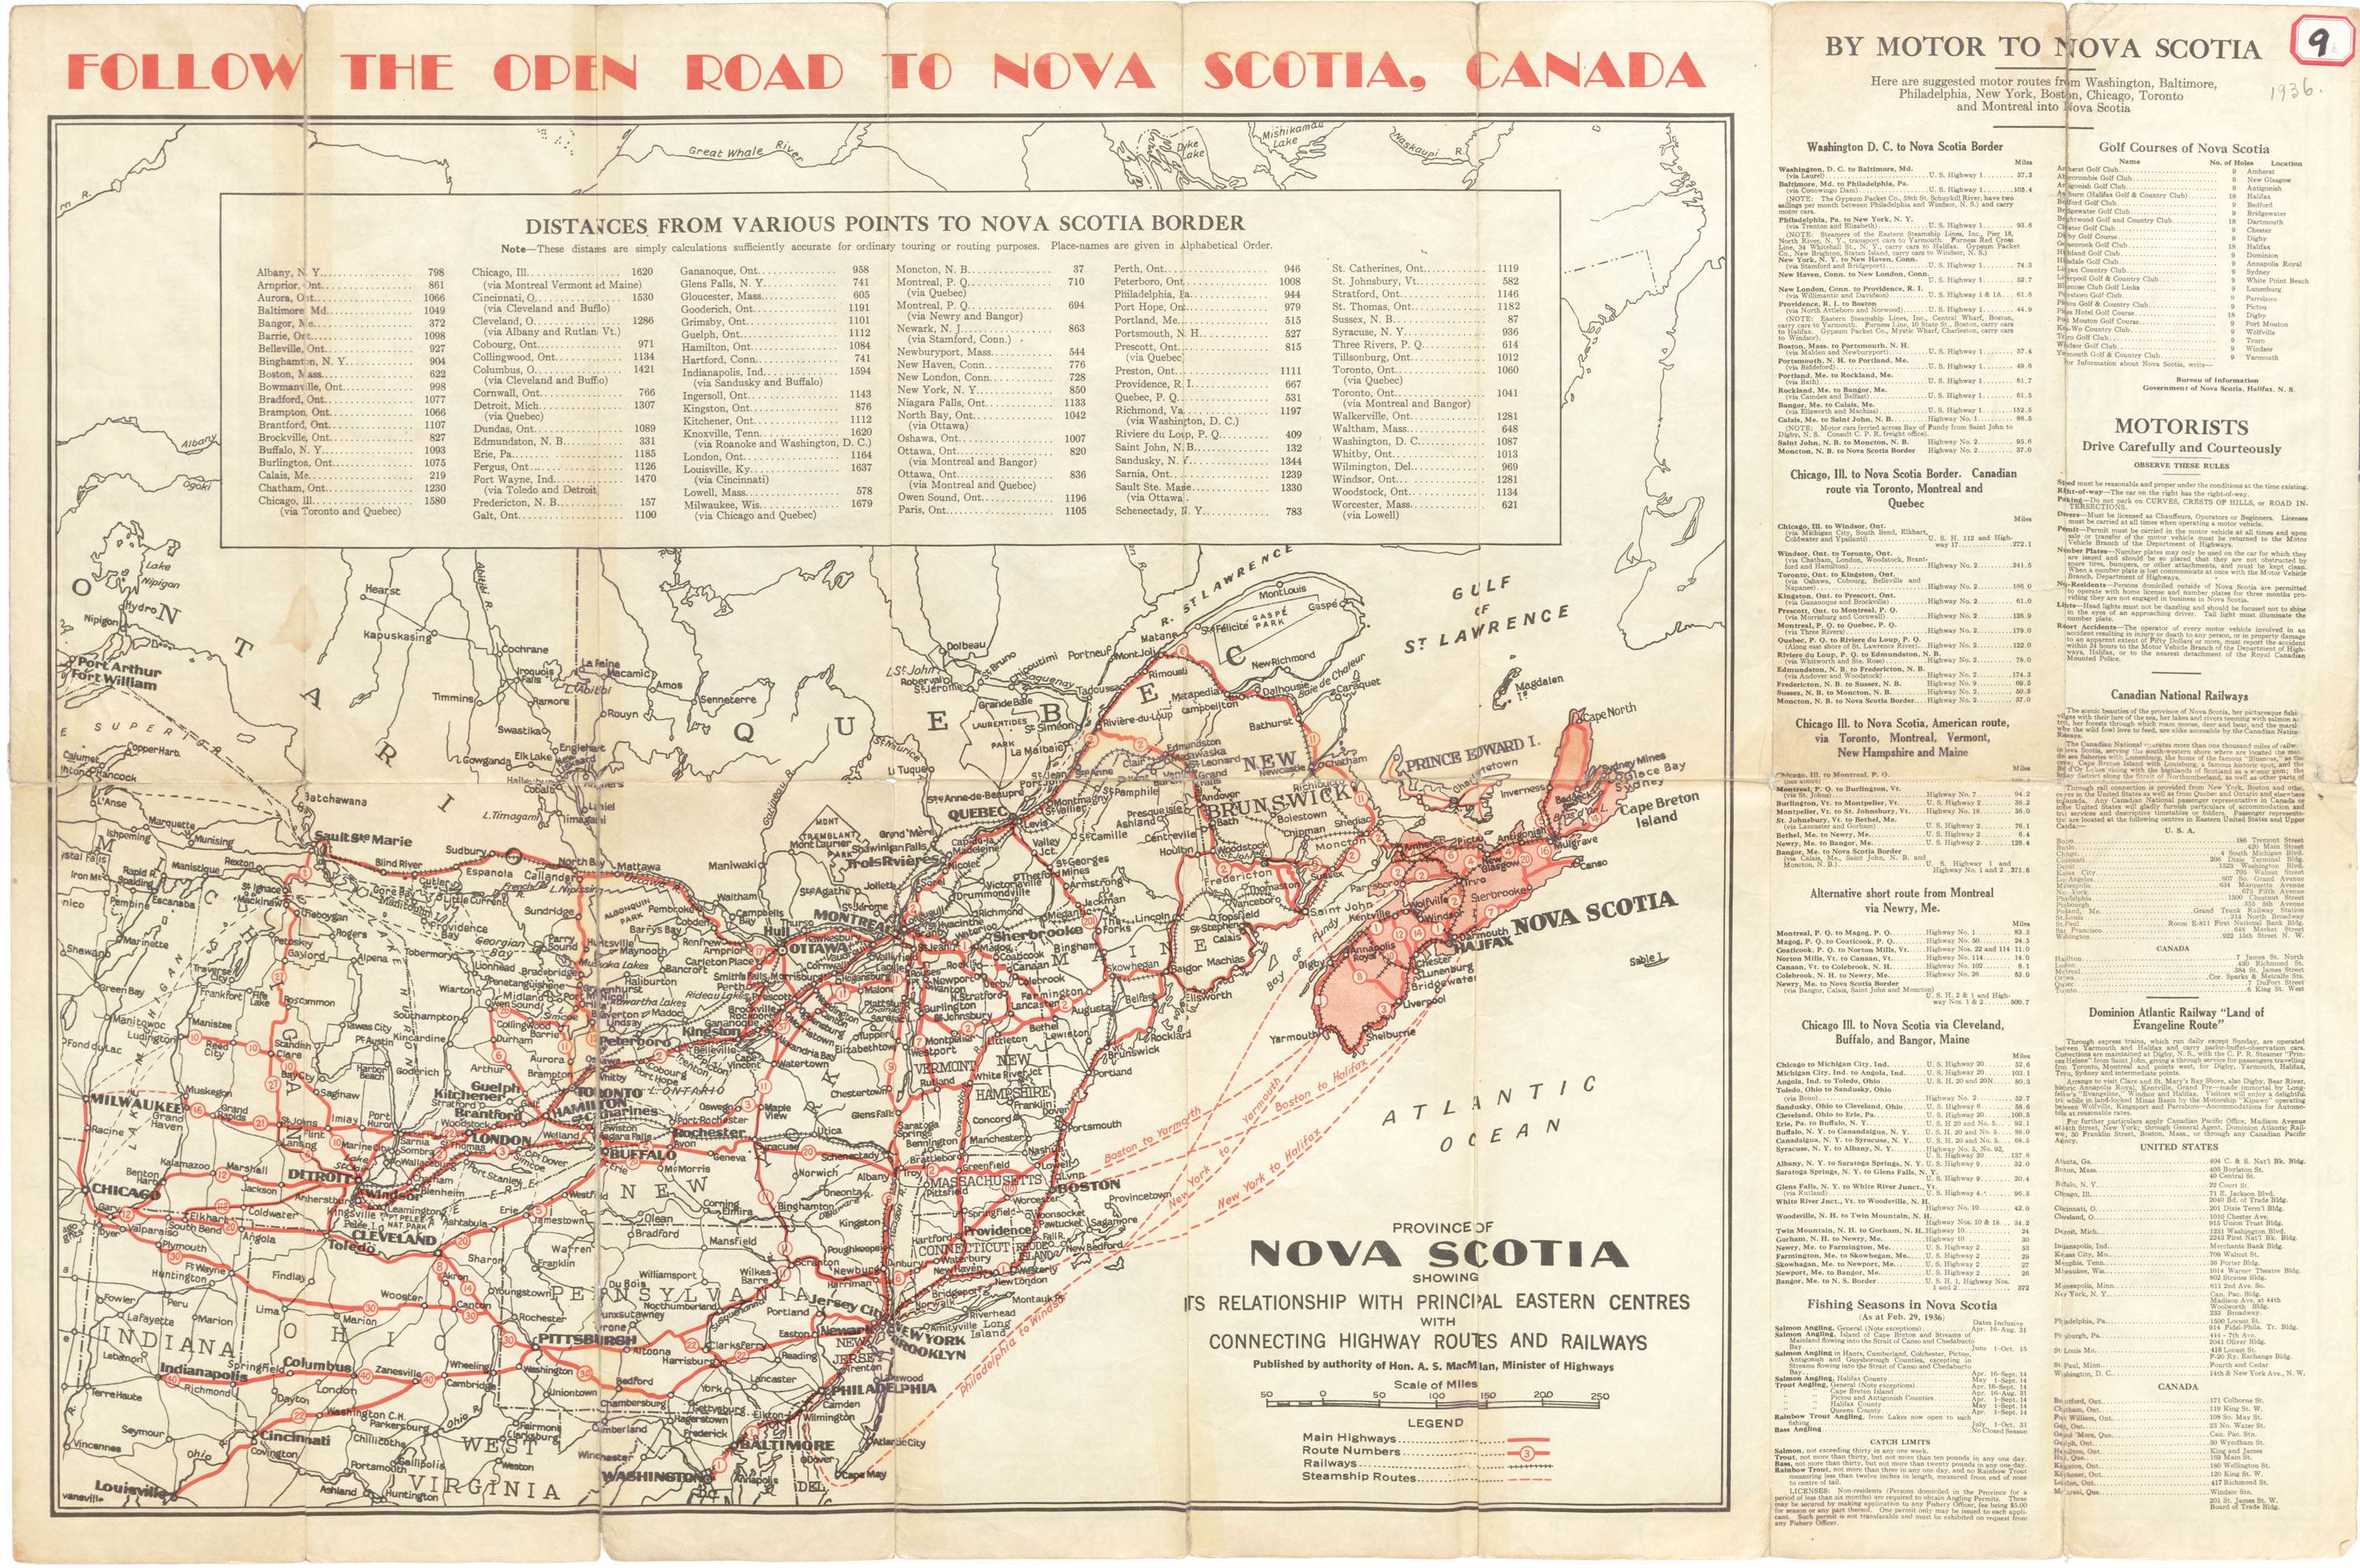 Highway Map Nova Scotia, published by the Department of Highways, Nova Scotia